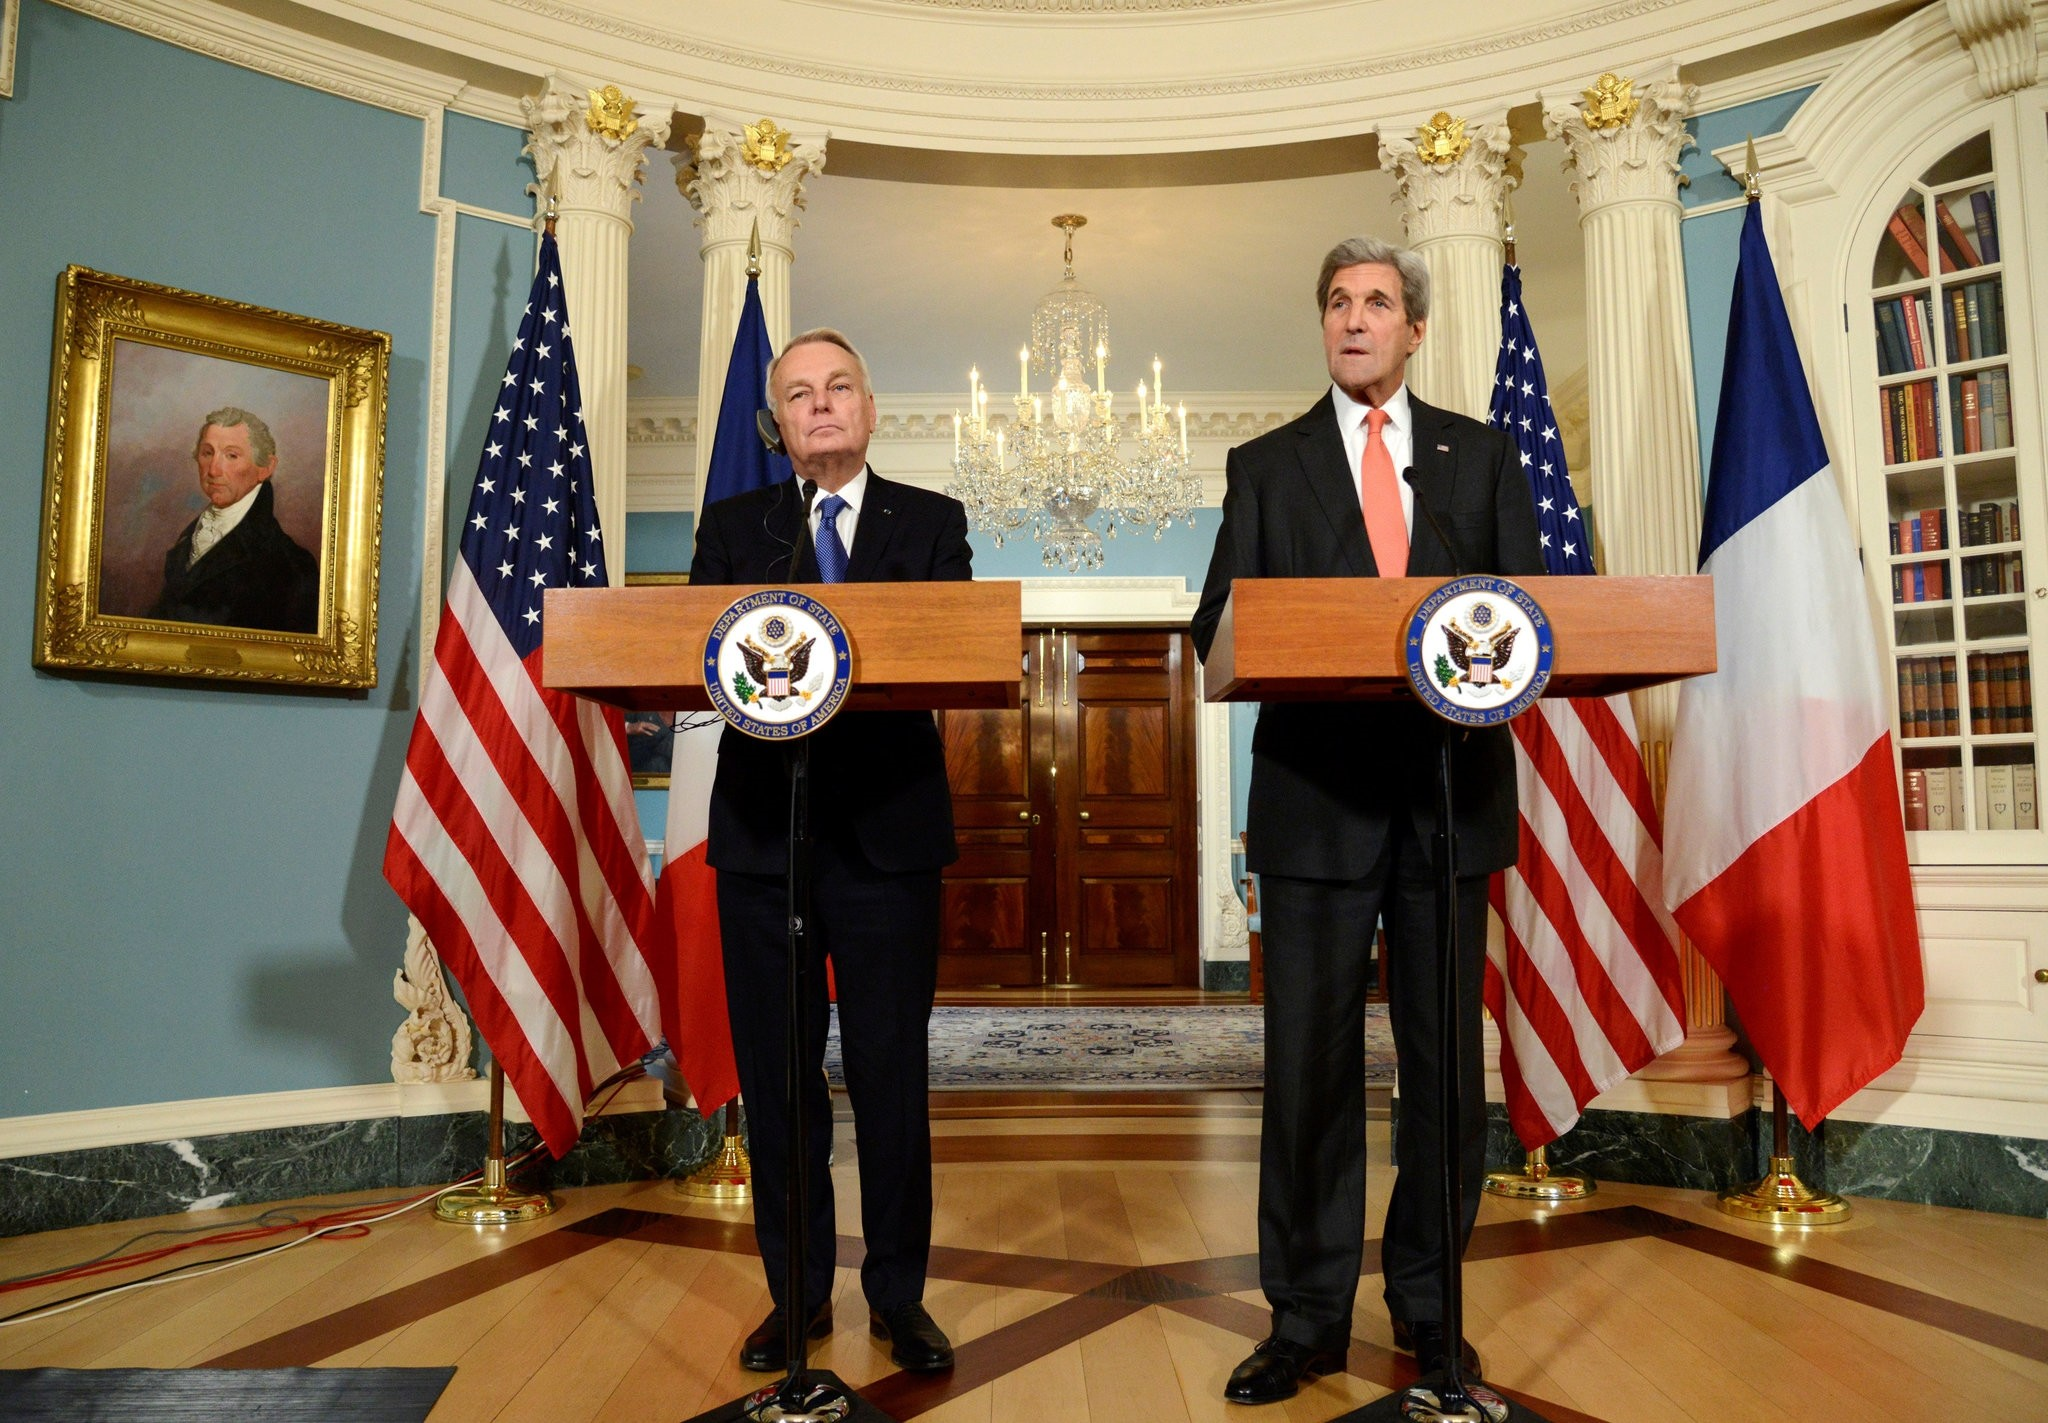 U.S. Secretary of State John Kerry (R) makes a statement with French Foreign Minister Jean-Marc Ayrault. (Reuters Photo)